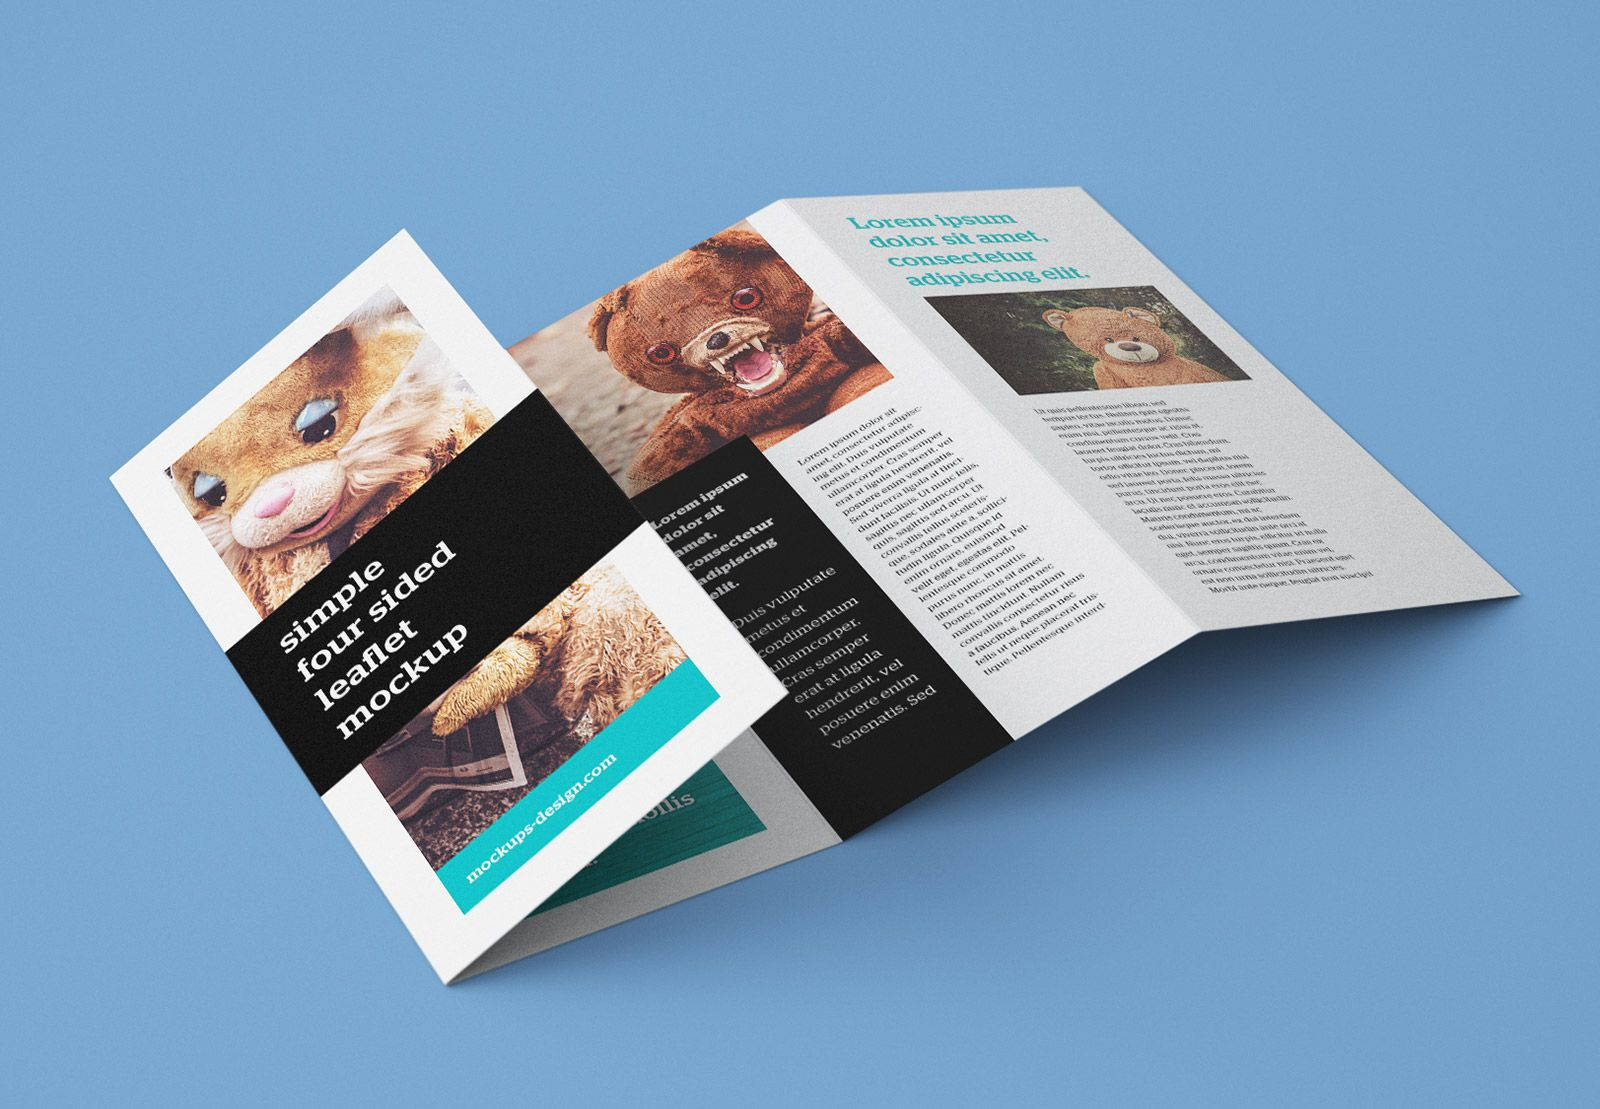 Free Accordion 4 Fold Brochure Leaflet Mockup Psd Intended For Quad Fold Brochure Template C Free Brochure Template Brochure Template Psd Brochure Template